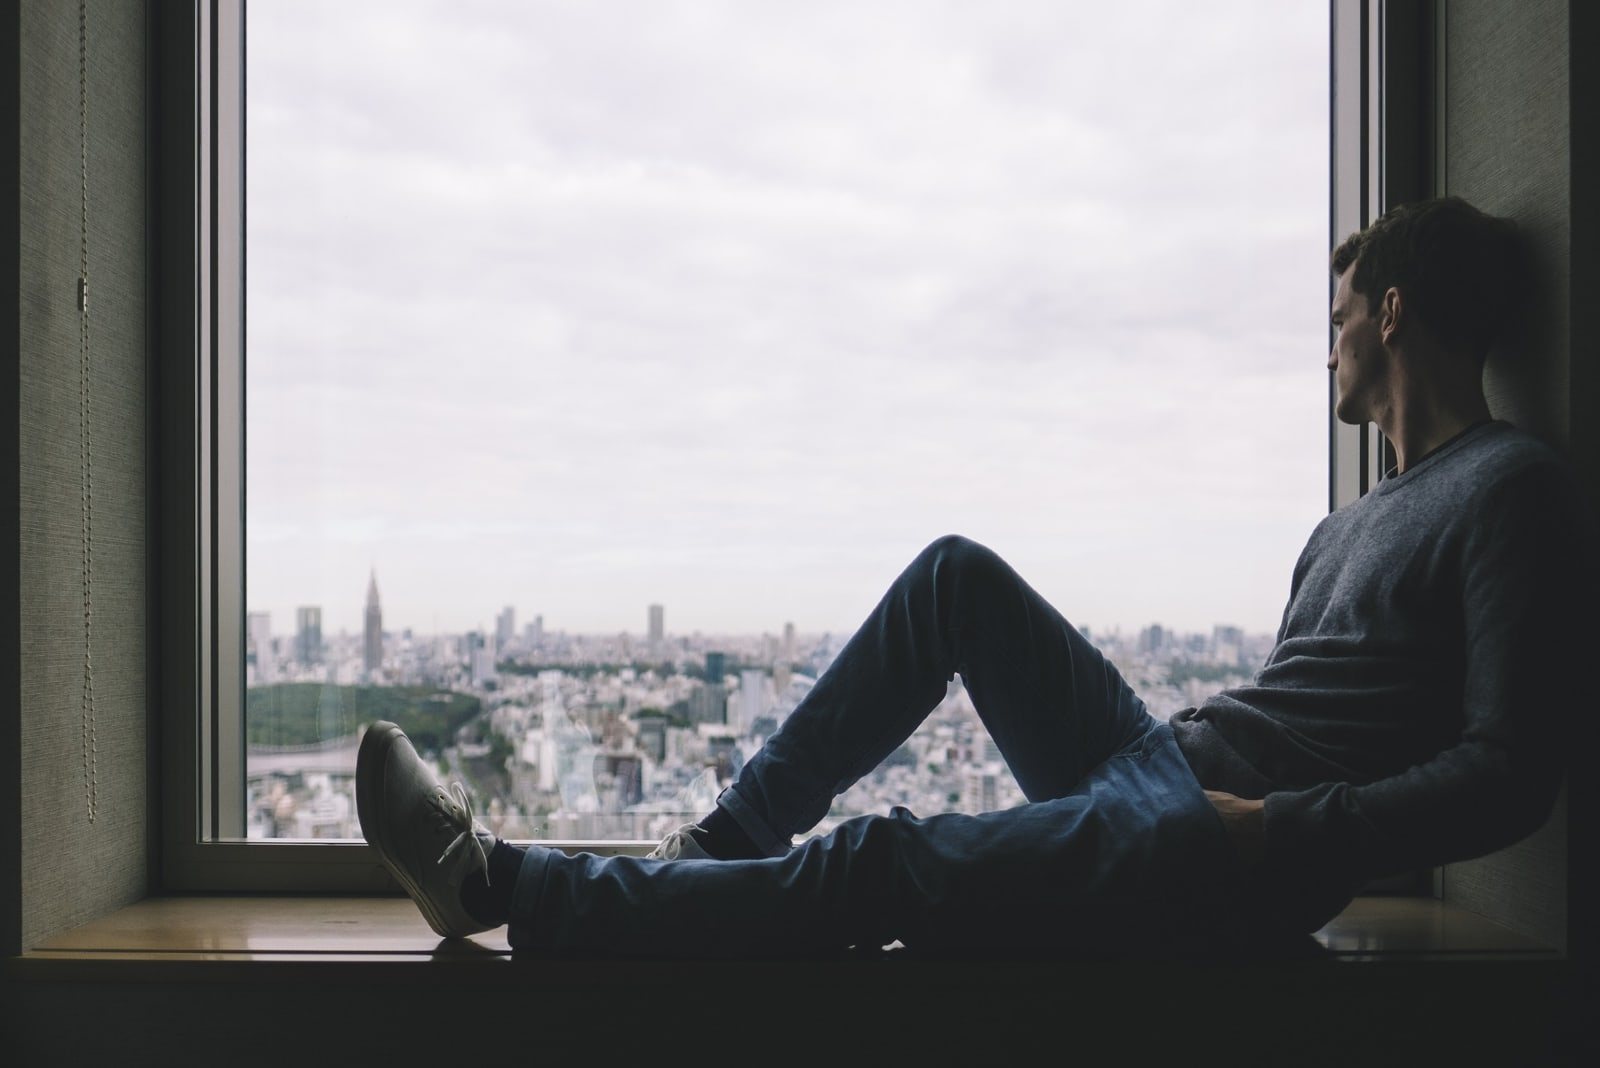 man sitting on window pane looking at city